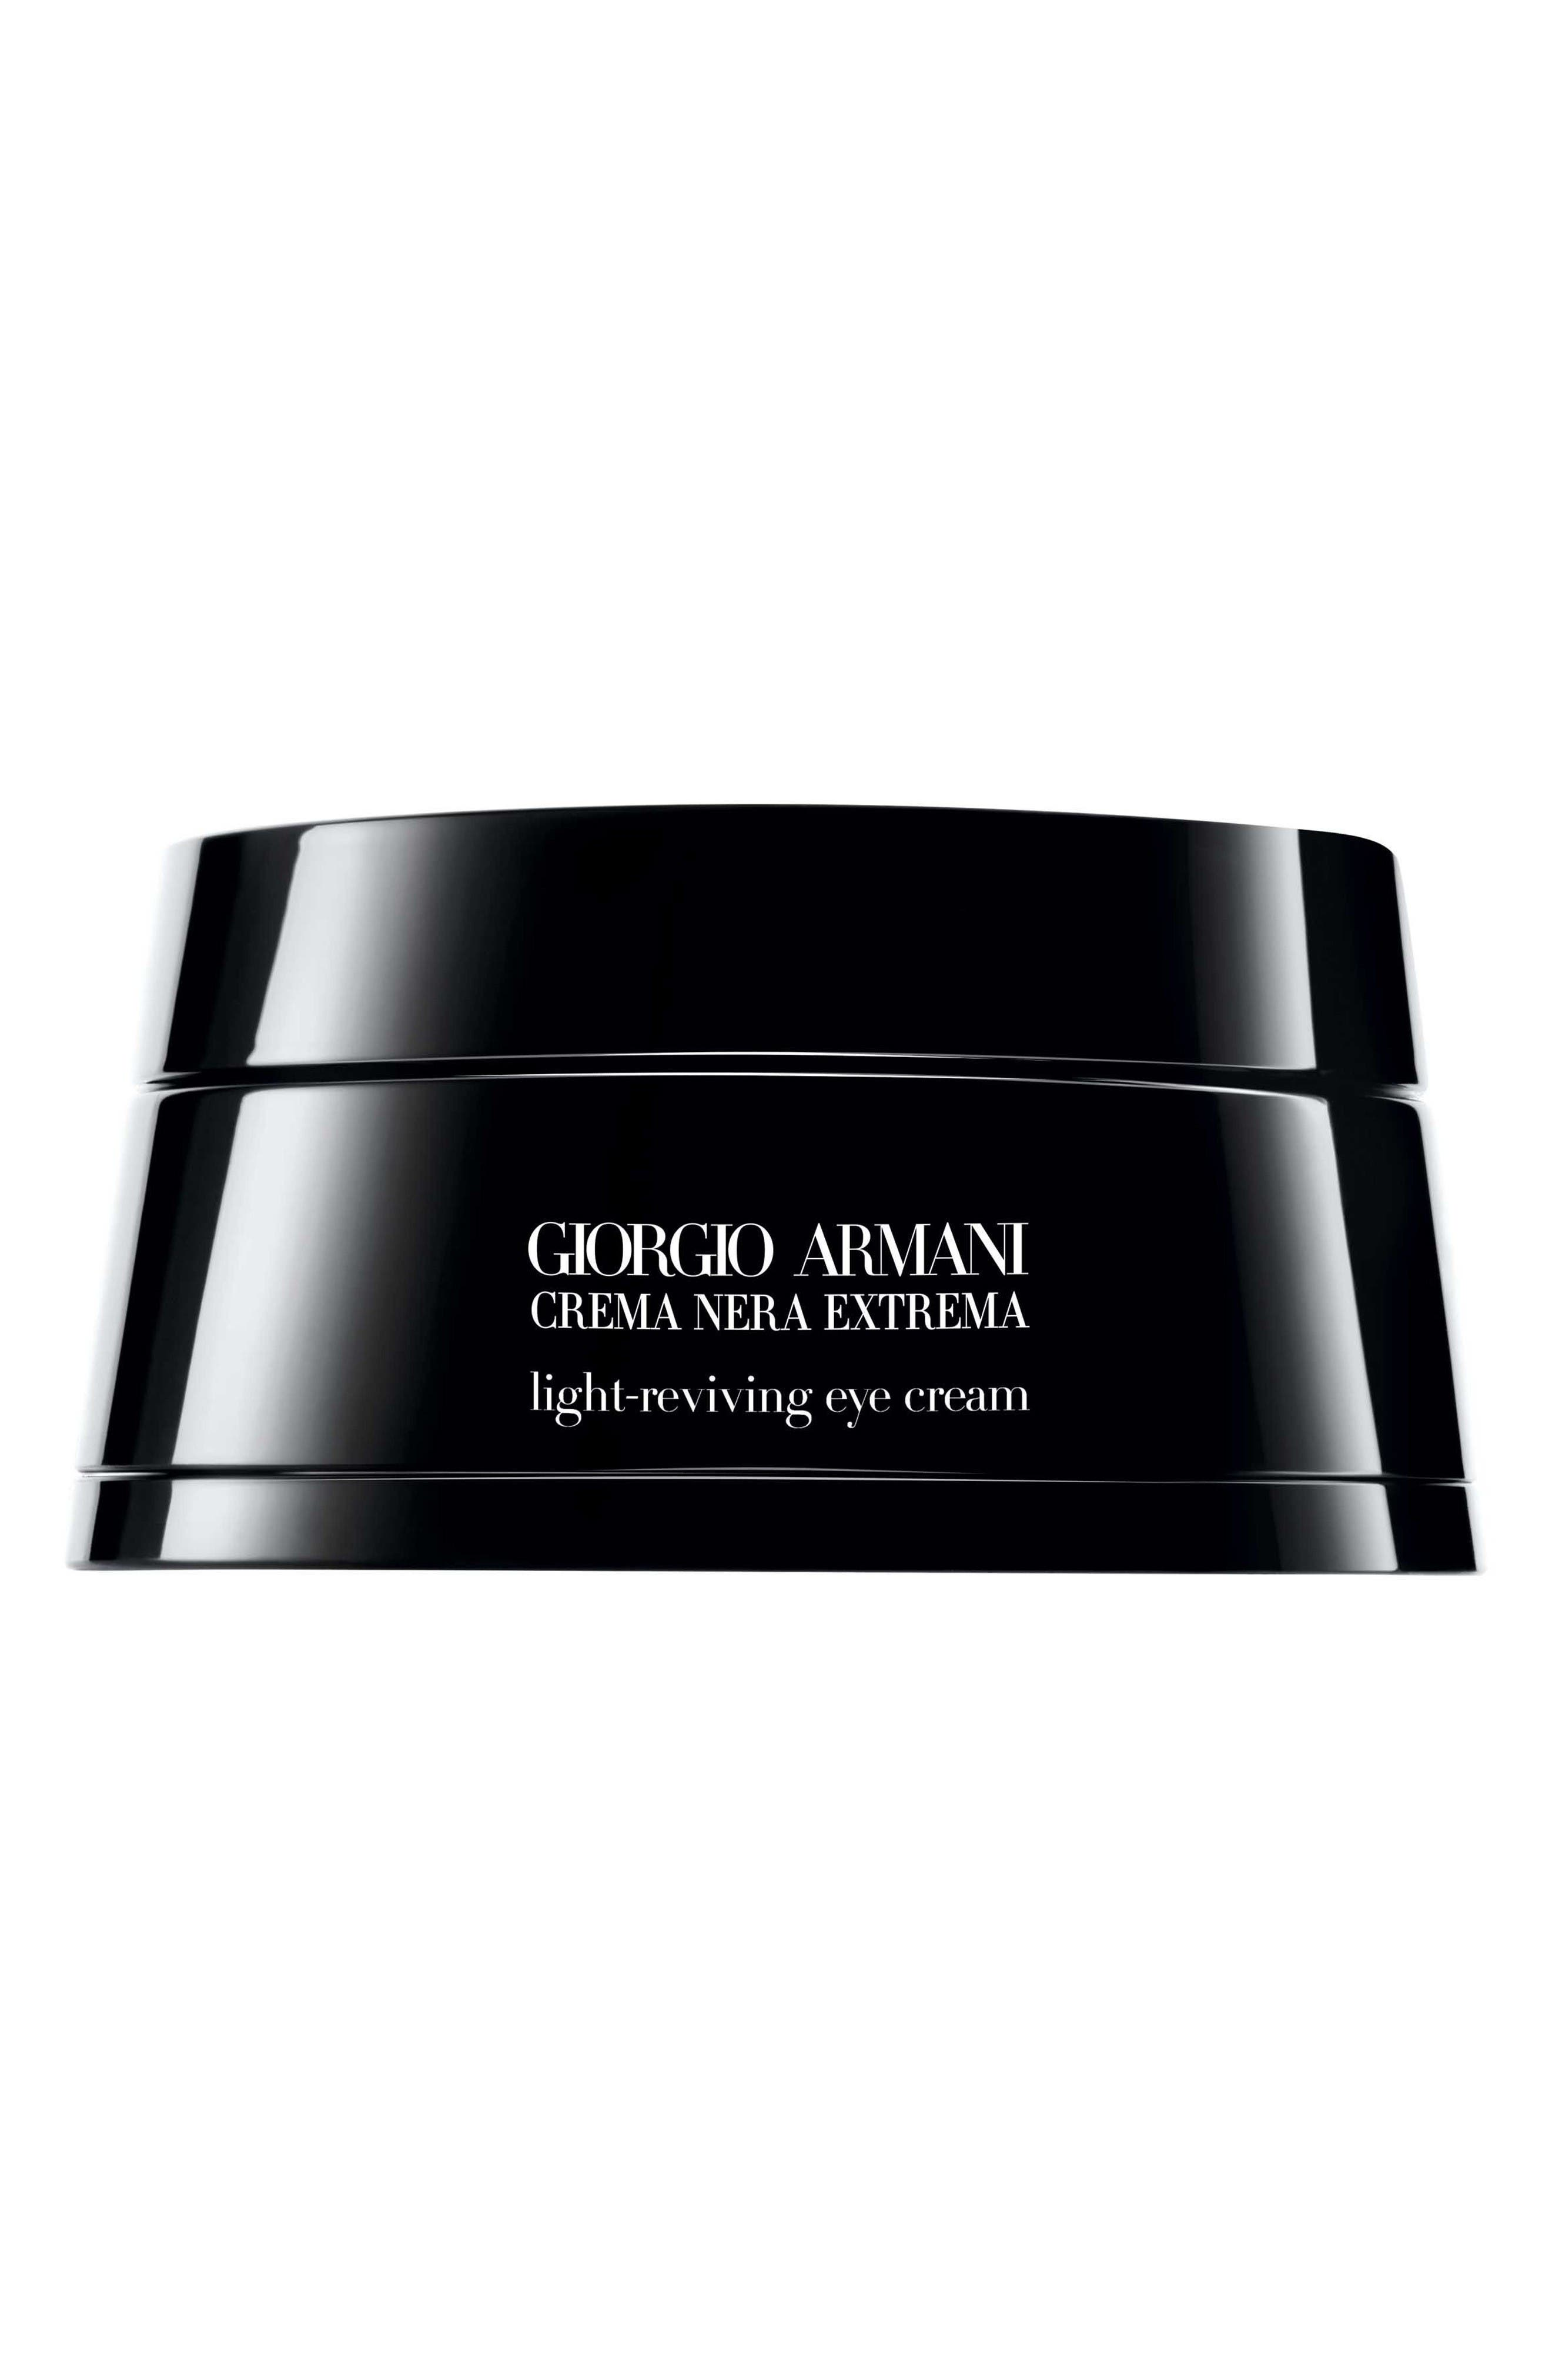 Giorgio Armani Crema Nera Extrema Light-Reviving Eye Cream